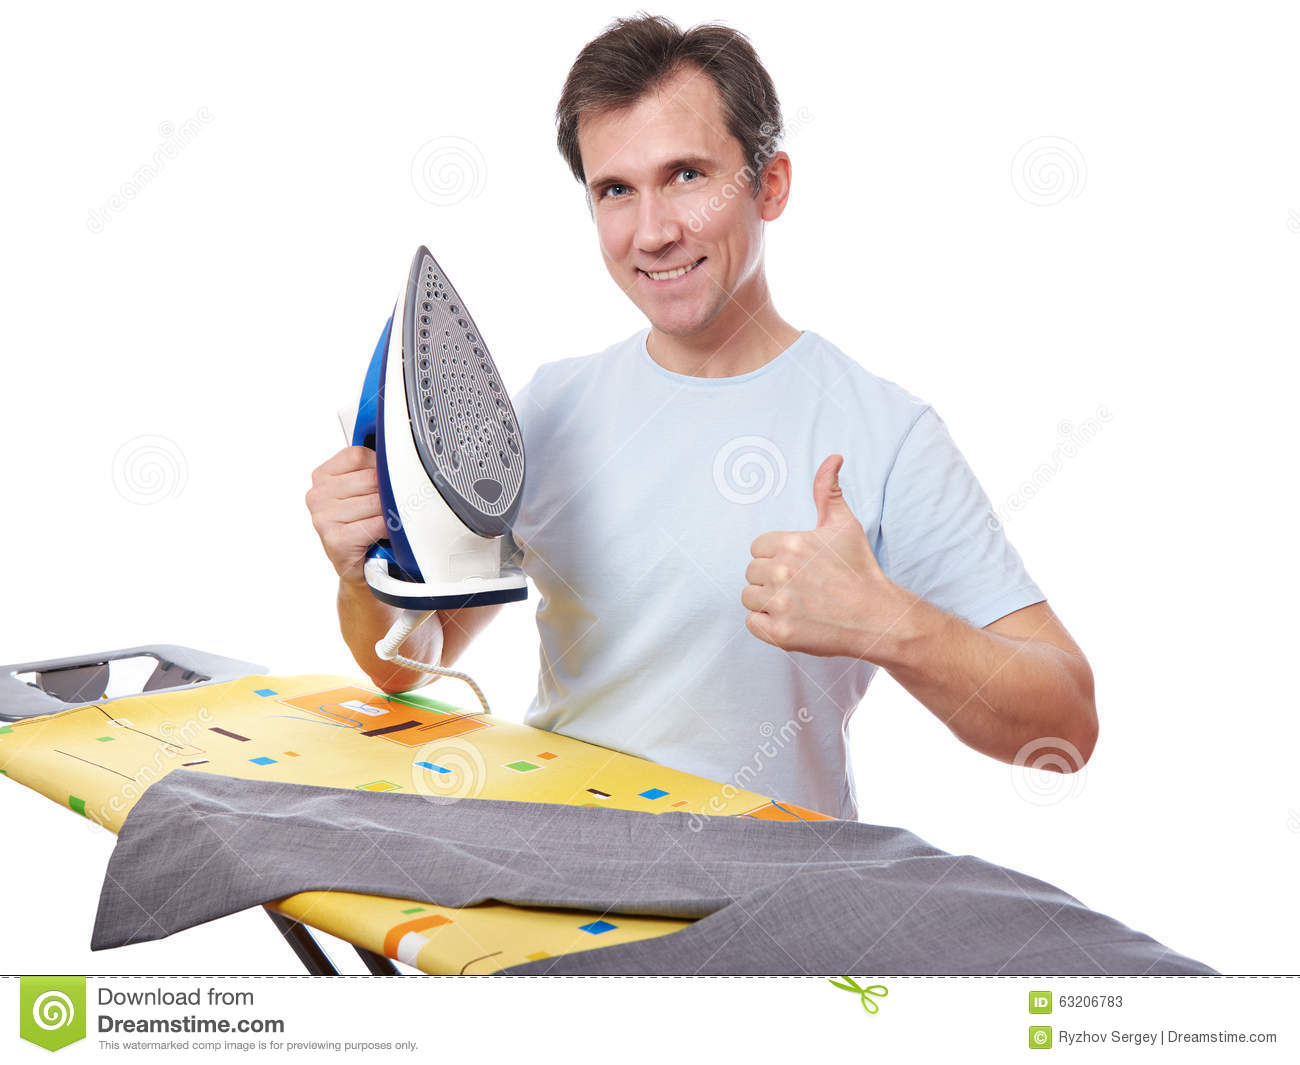 happy-man-ironing-pants-showing-gesture-